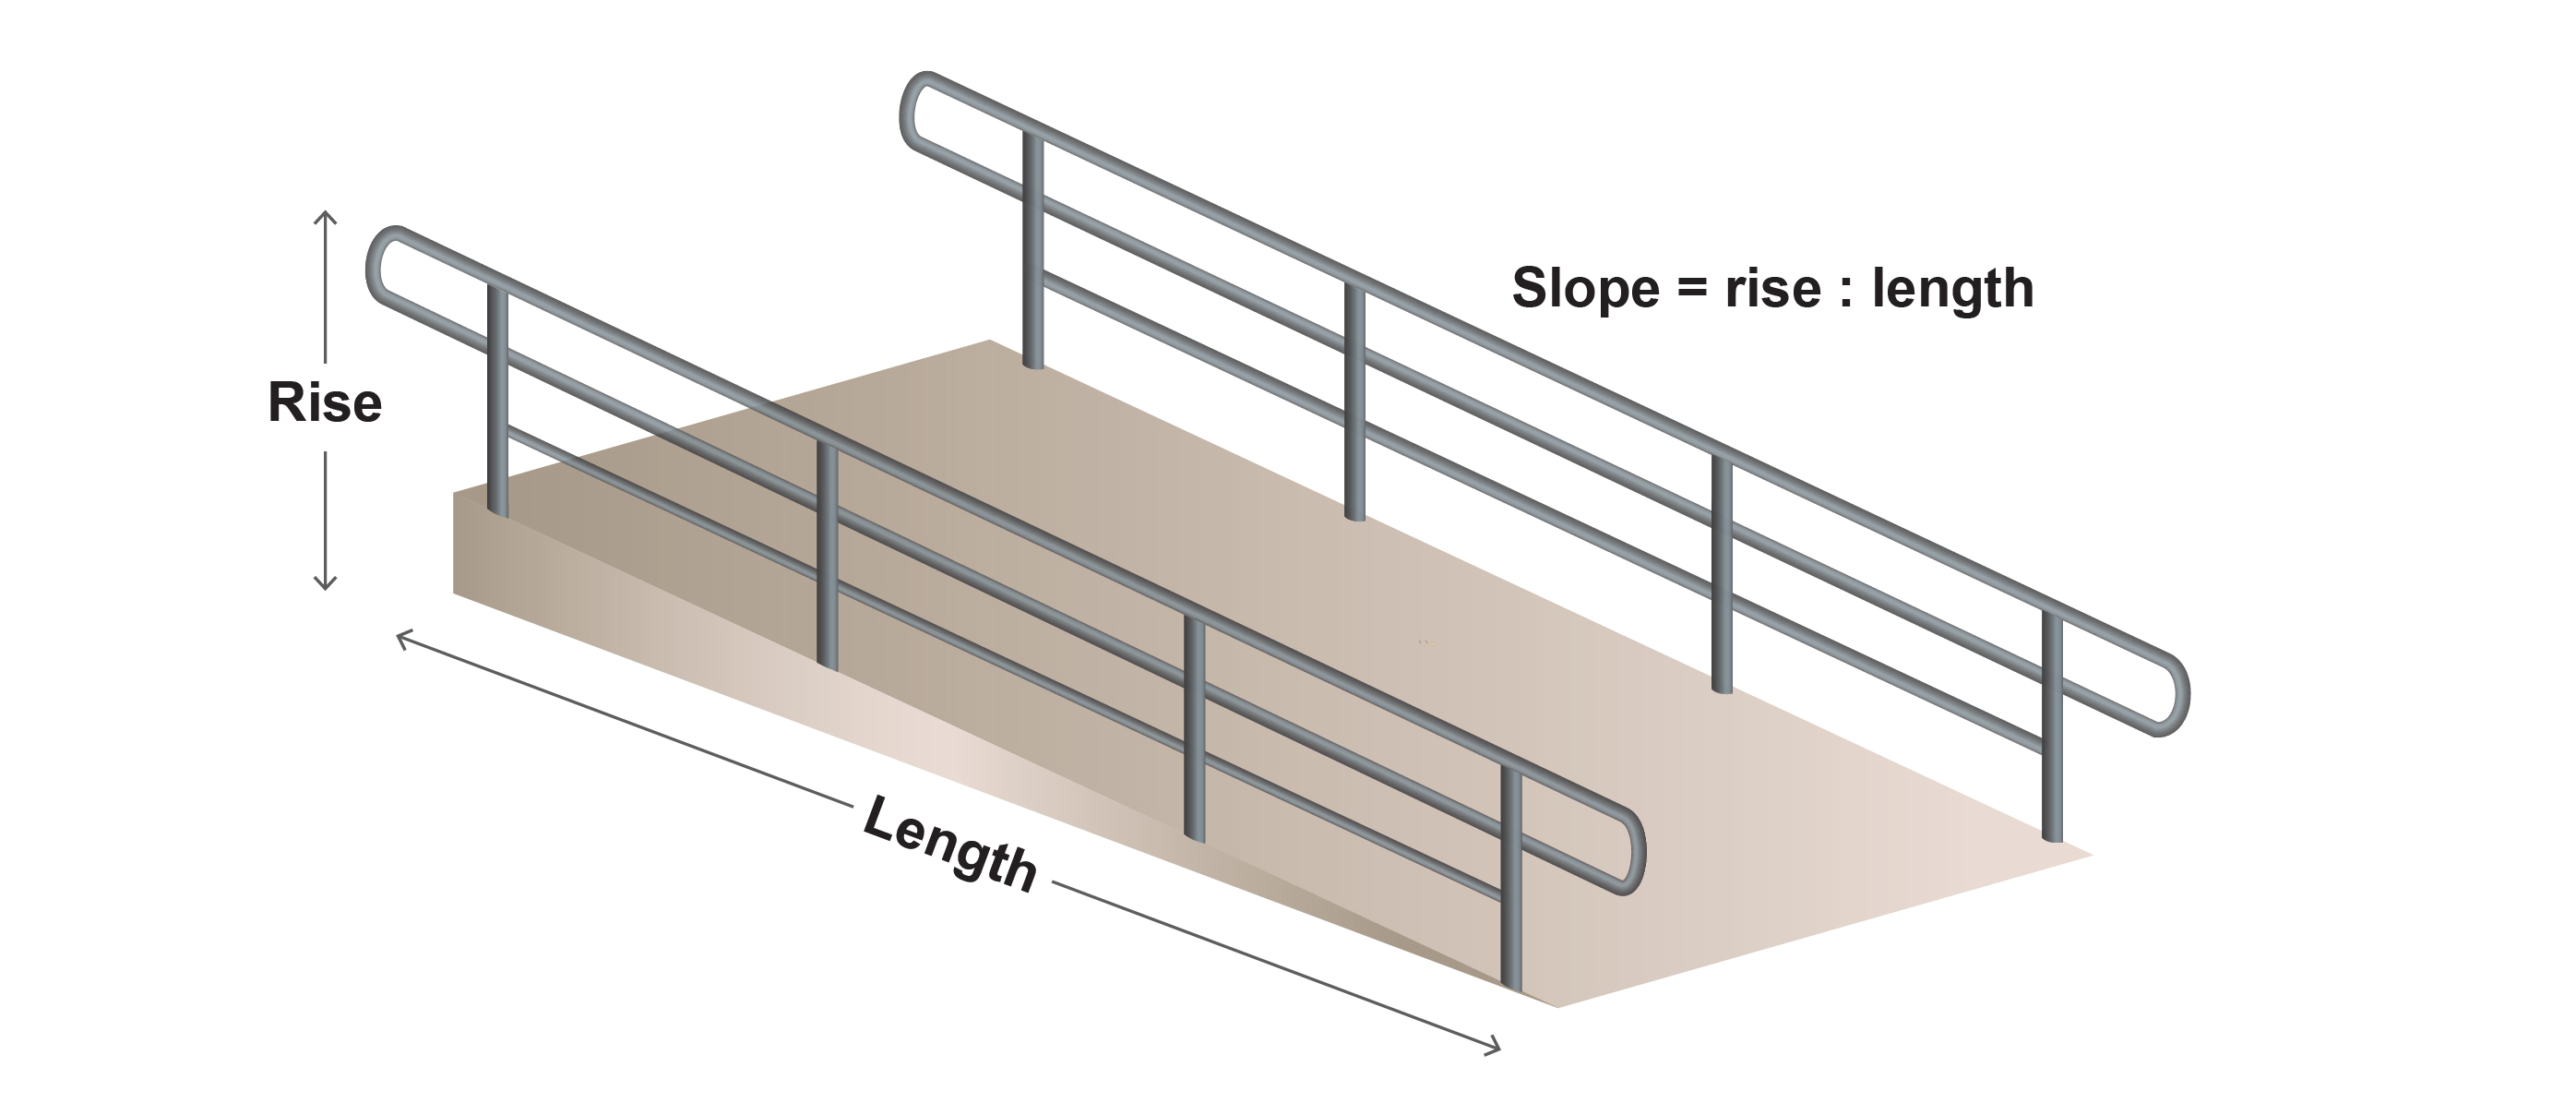 Slope of Ramp Illustration